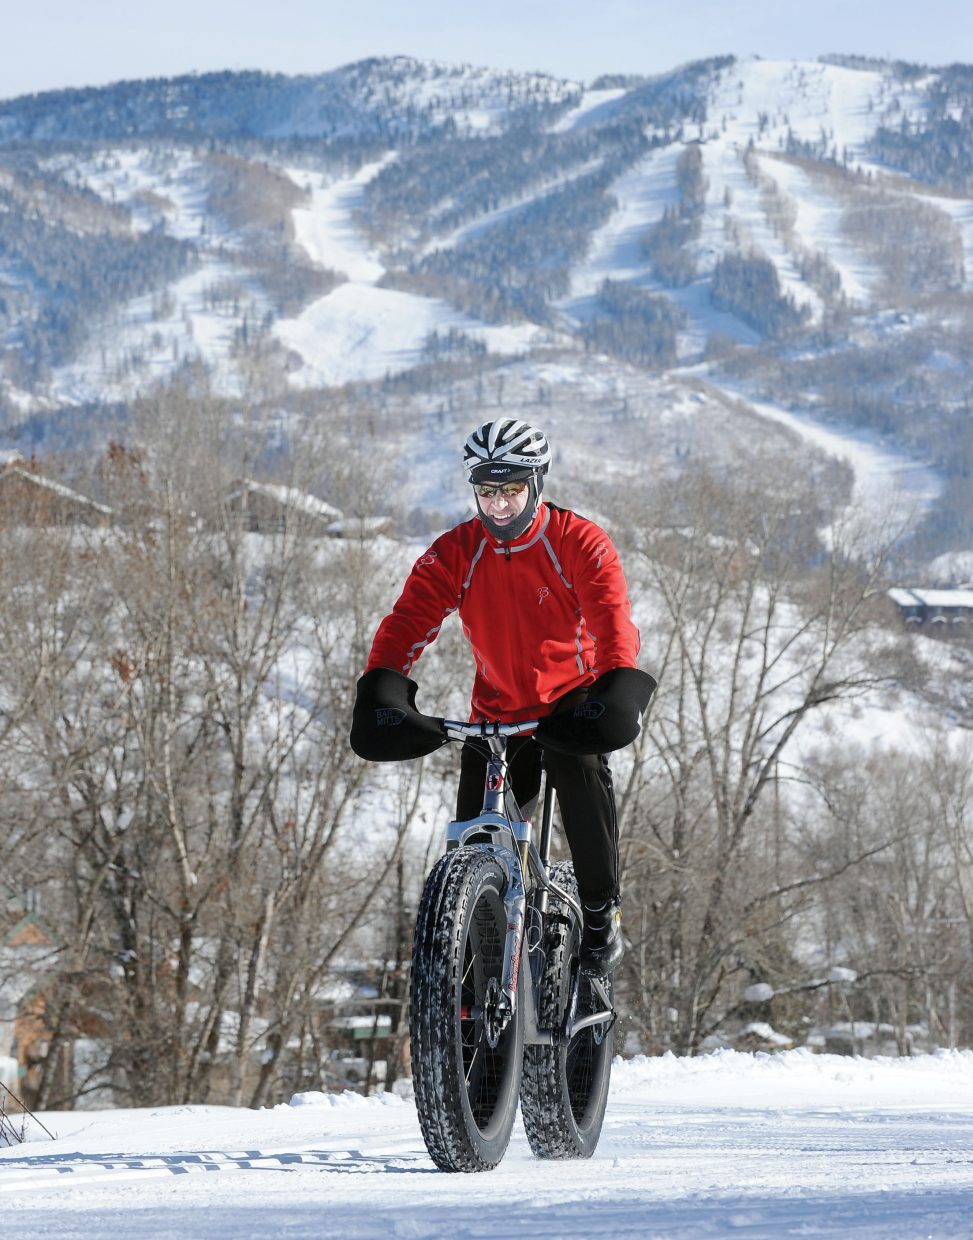 Cyclist Steve Palmquest rides a bike equipped with oversized tires on the trails at Howelsen Hill on Tuesday afternoon. The bike's tires allow it to stay on top of the snow.